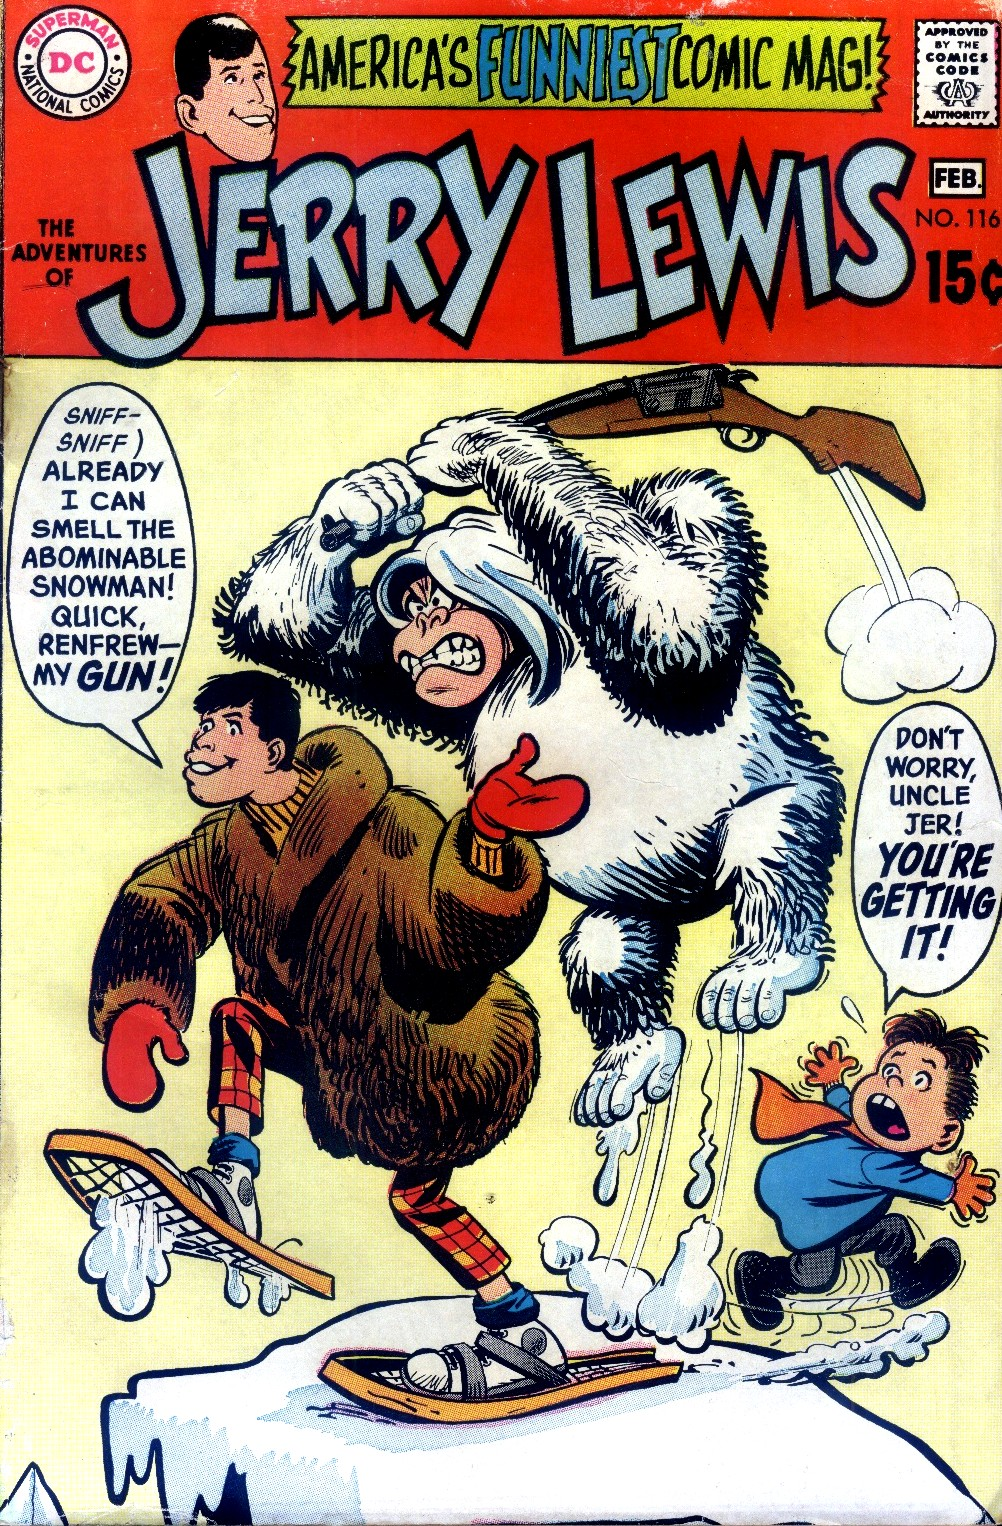 The Adventures of Jerry Lewis issue 116 - Page 1